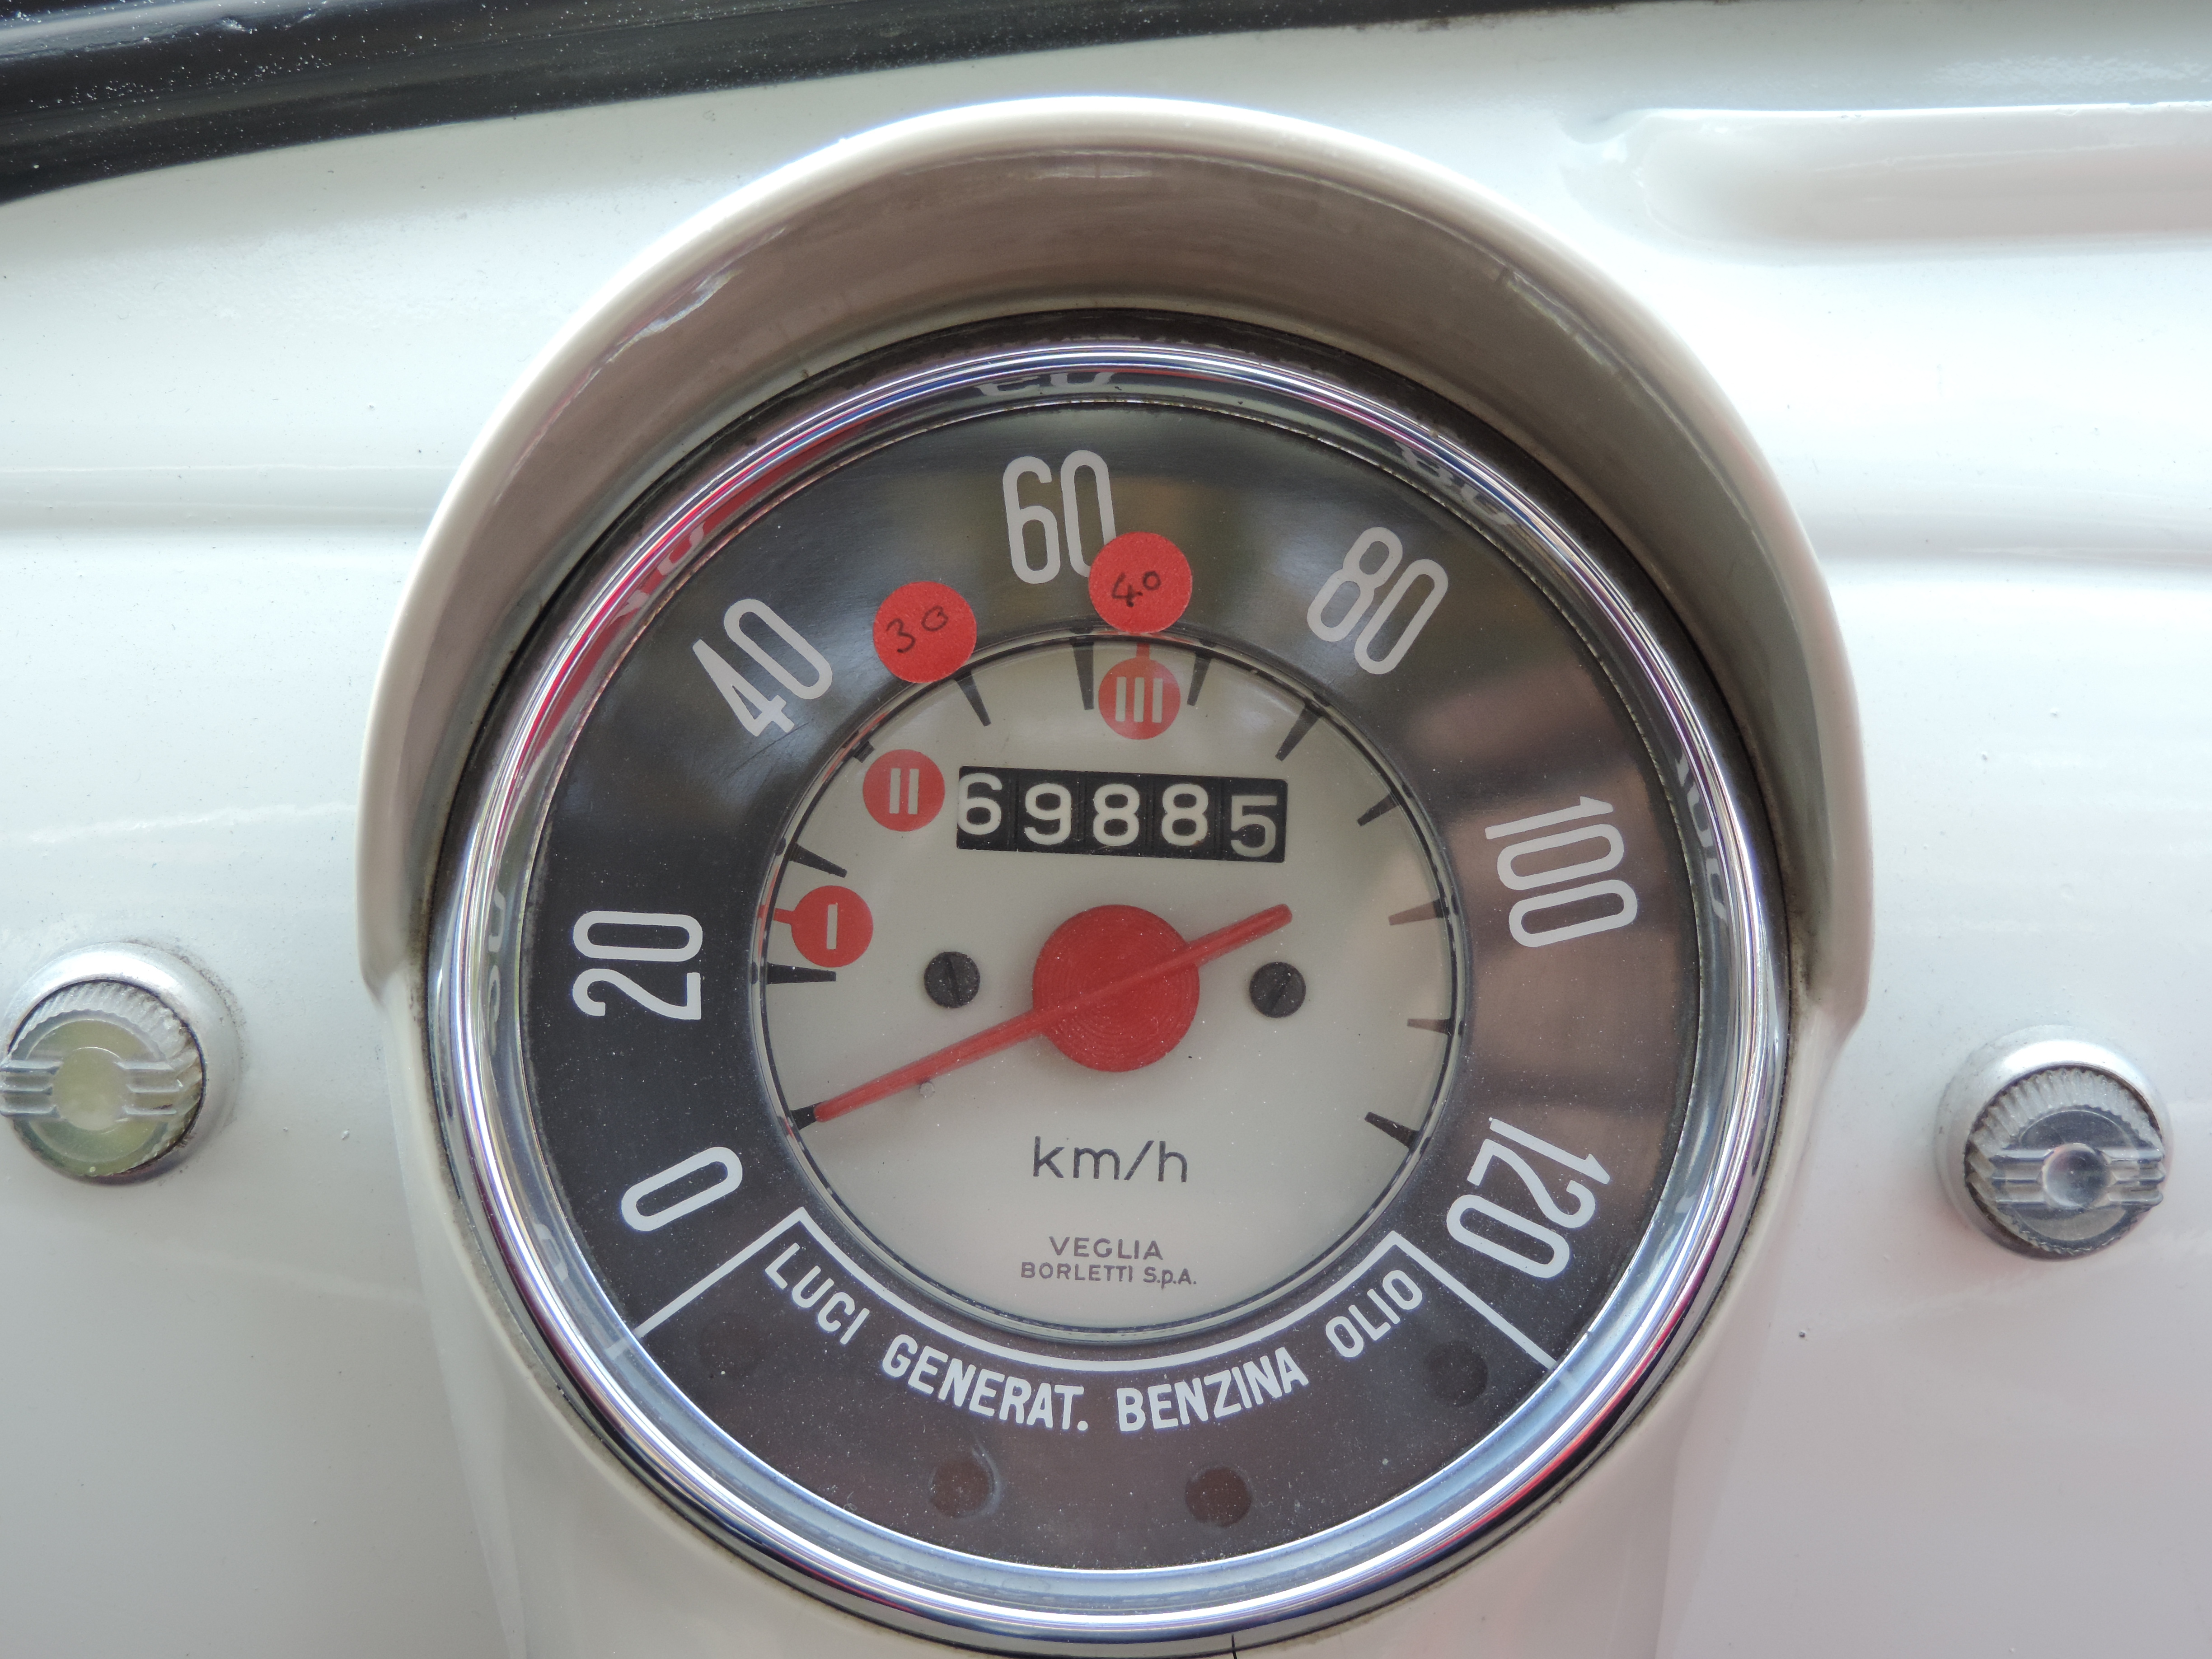 Speedo is only dial